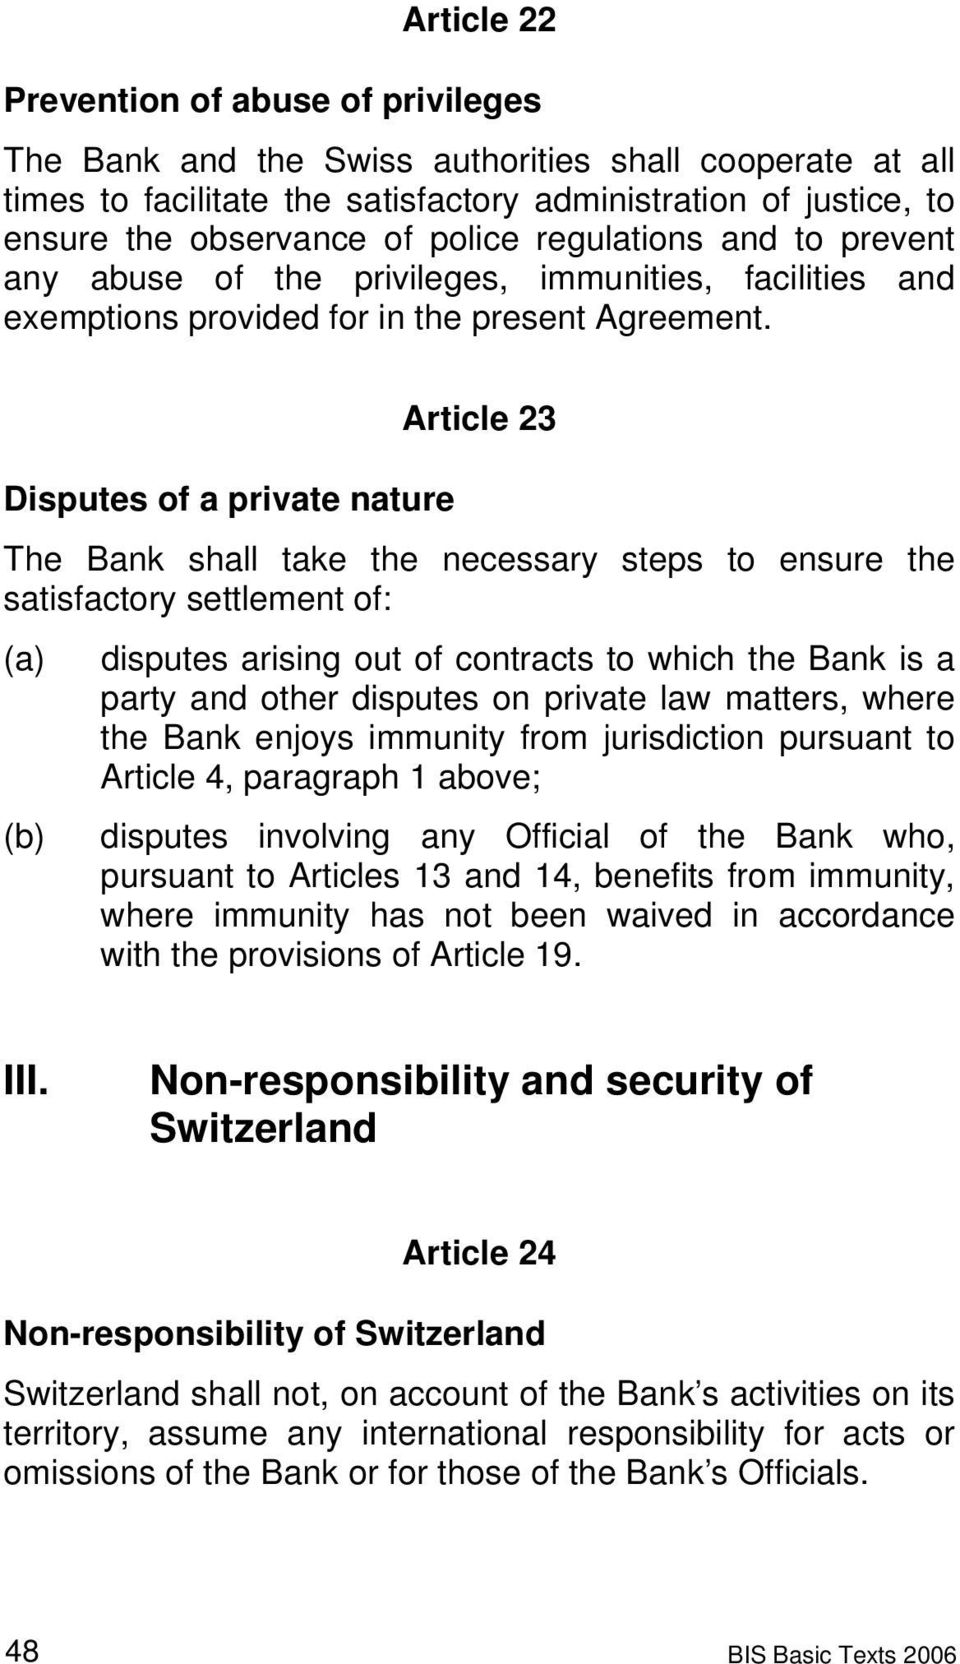 Article 23 Disputes of a private nature The Bank shall take the necessary steps to ensure the satisfactory settlement of: (a) disputes arising out of contracts to which the Bank is a party and other